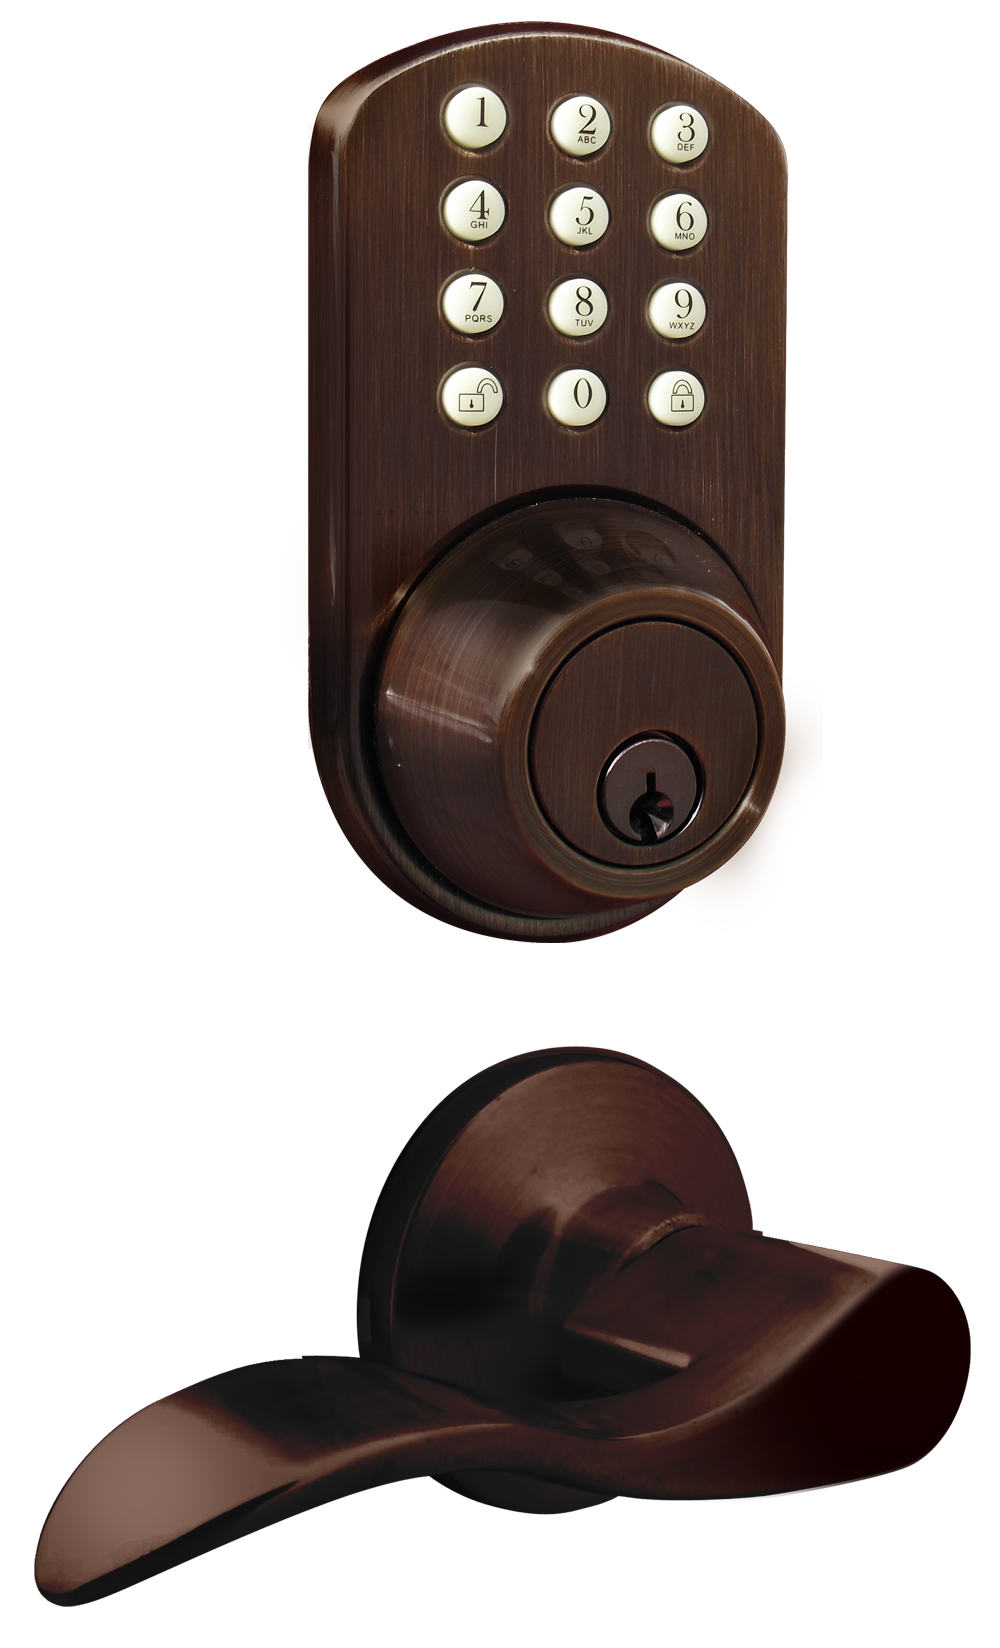 Milocks Tfl 02 Keyless Entry Deadbolt And Lever Handle Door Lock Combo Pack With Electronic